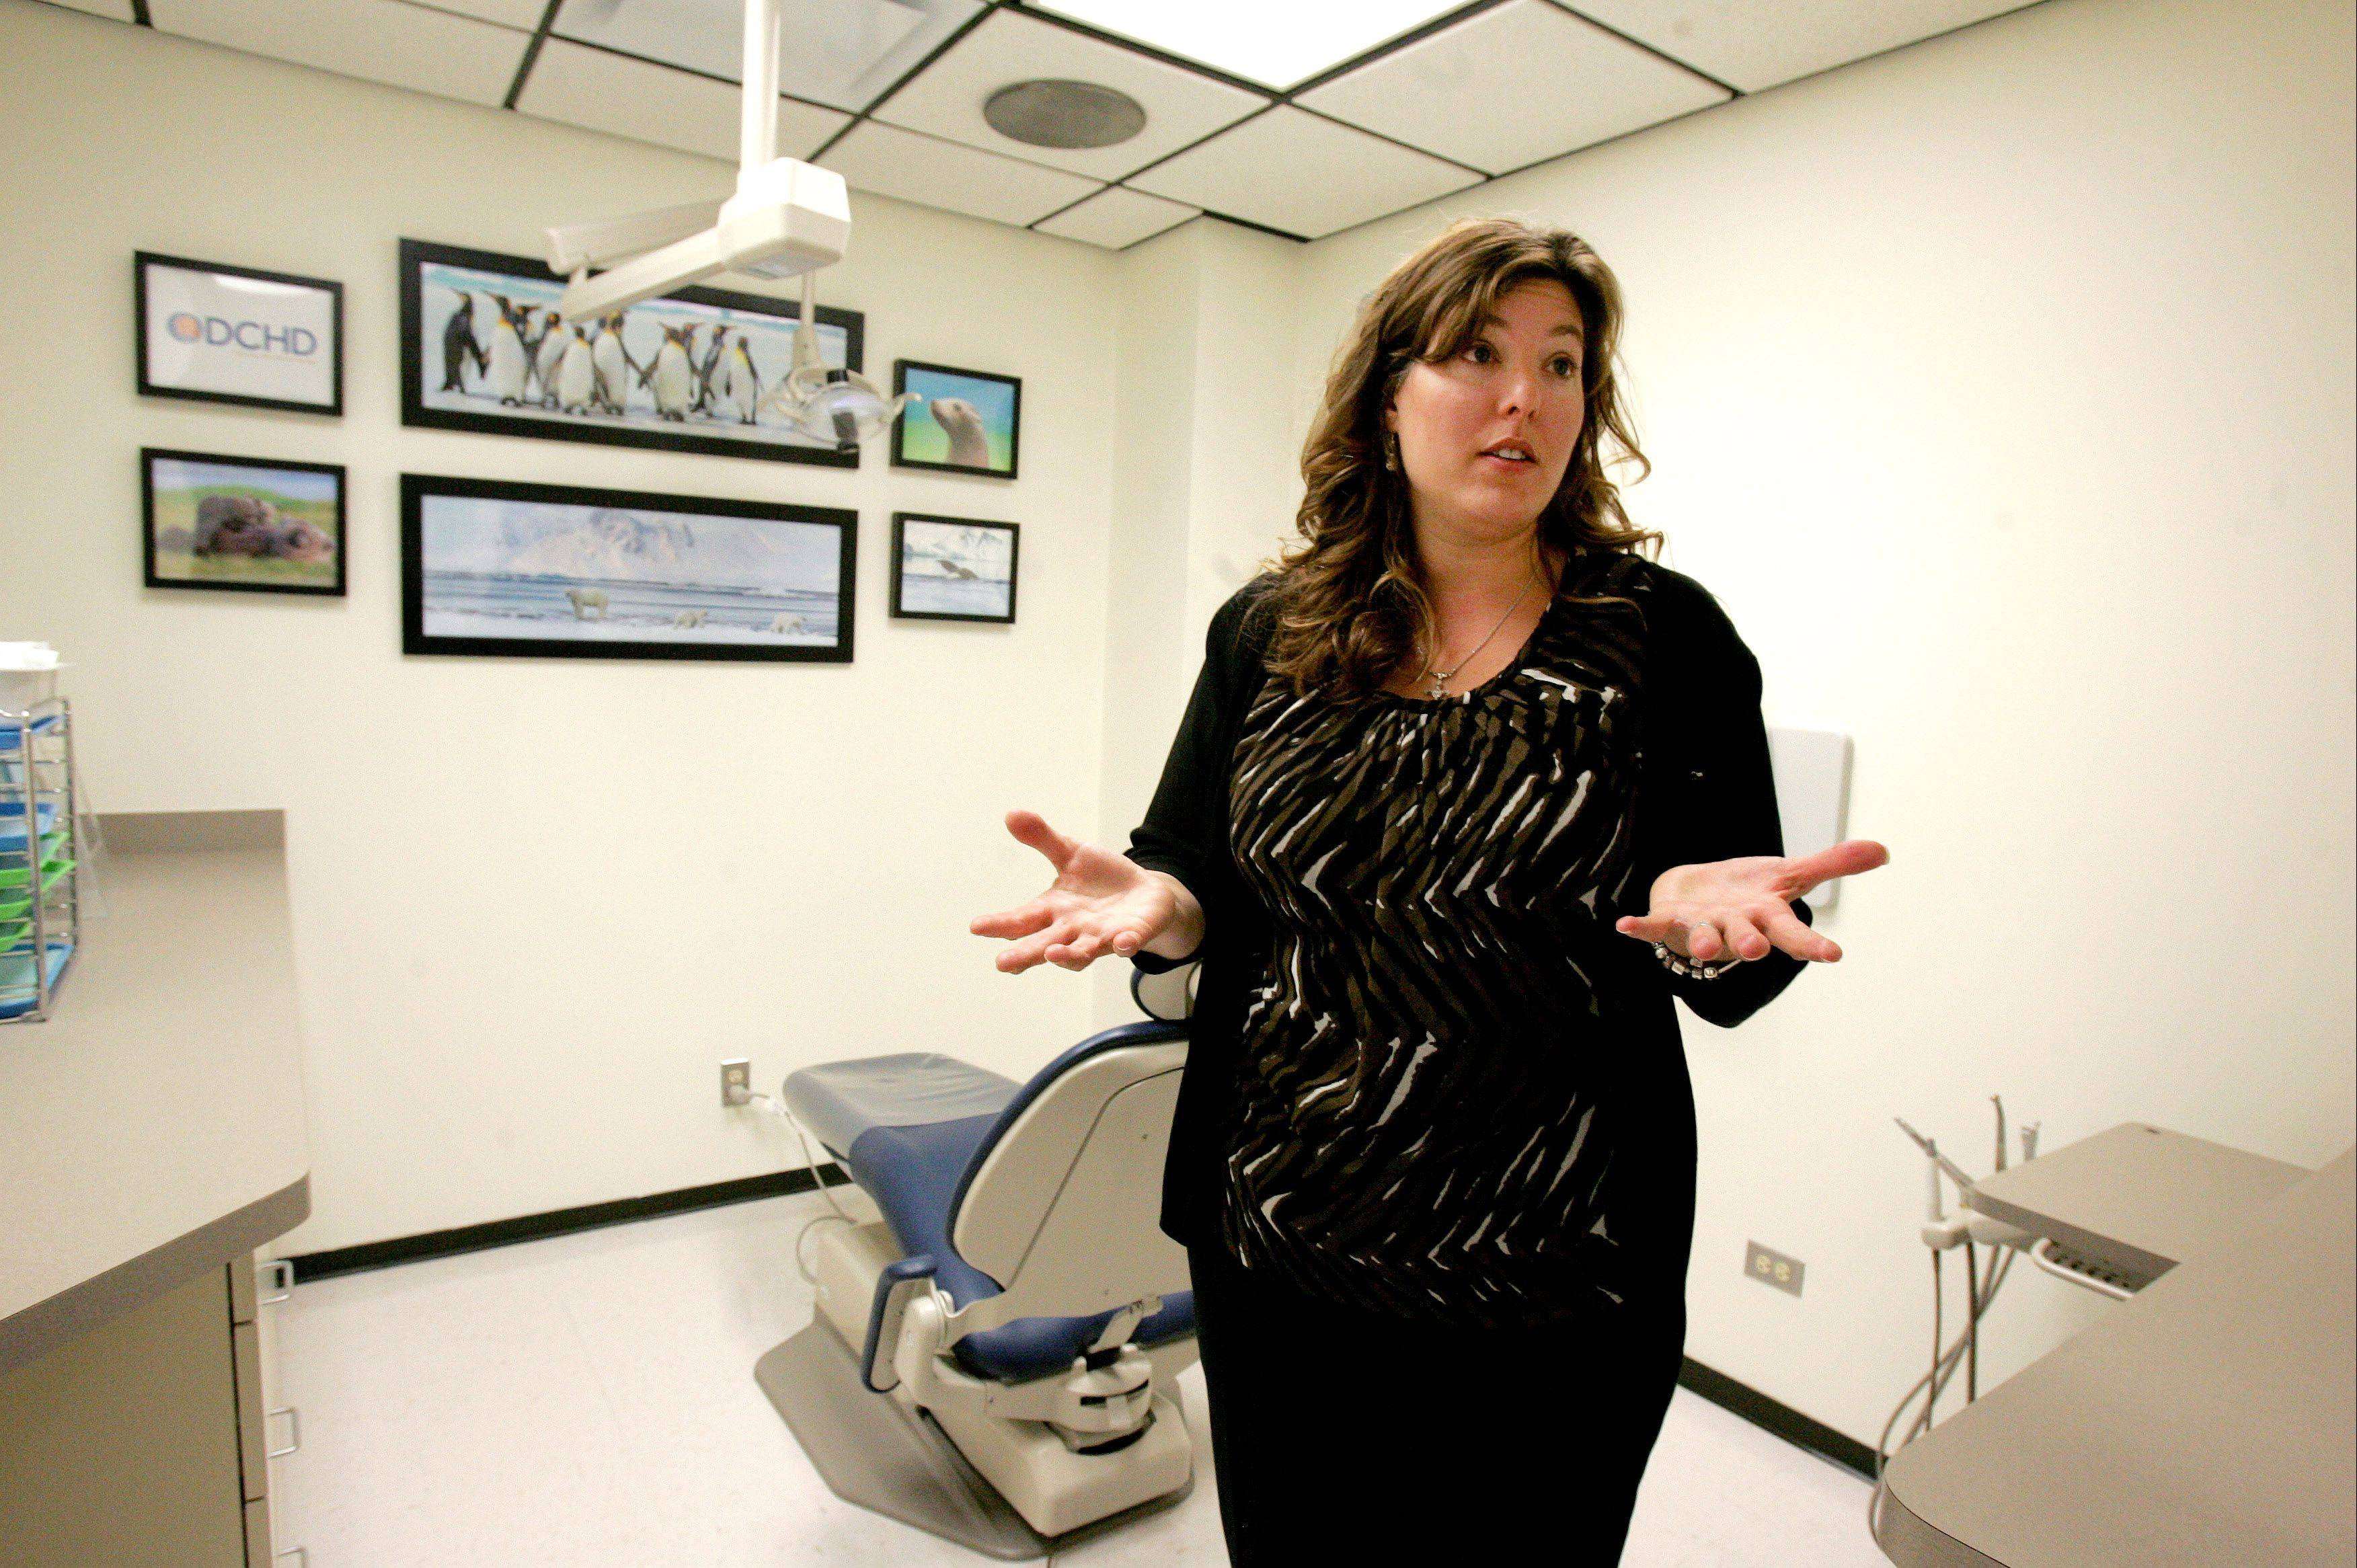 Mila Tsagalis, the DuPage County Health Department's assistant director of dental health, shows off one of the new treatment rooms at the expanded urgent care dental clinic in Wheaton. The number of treatment rooms at the clinic recently was increased from two to five.